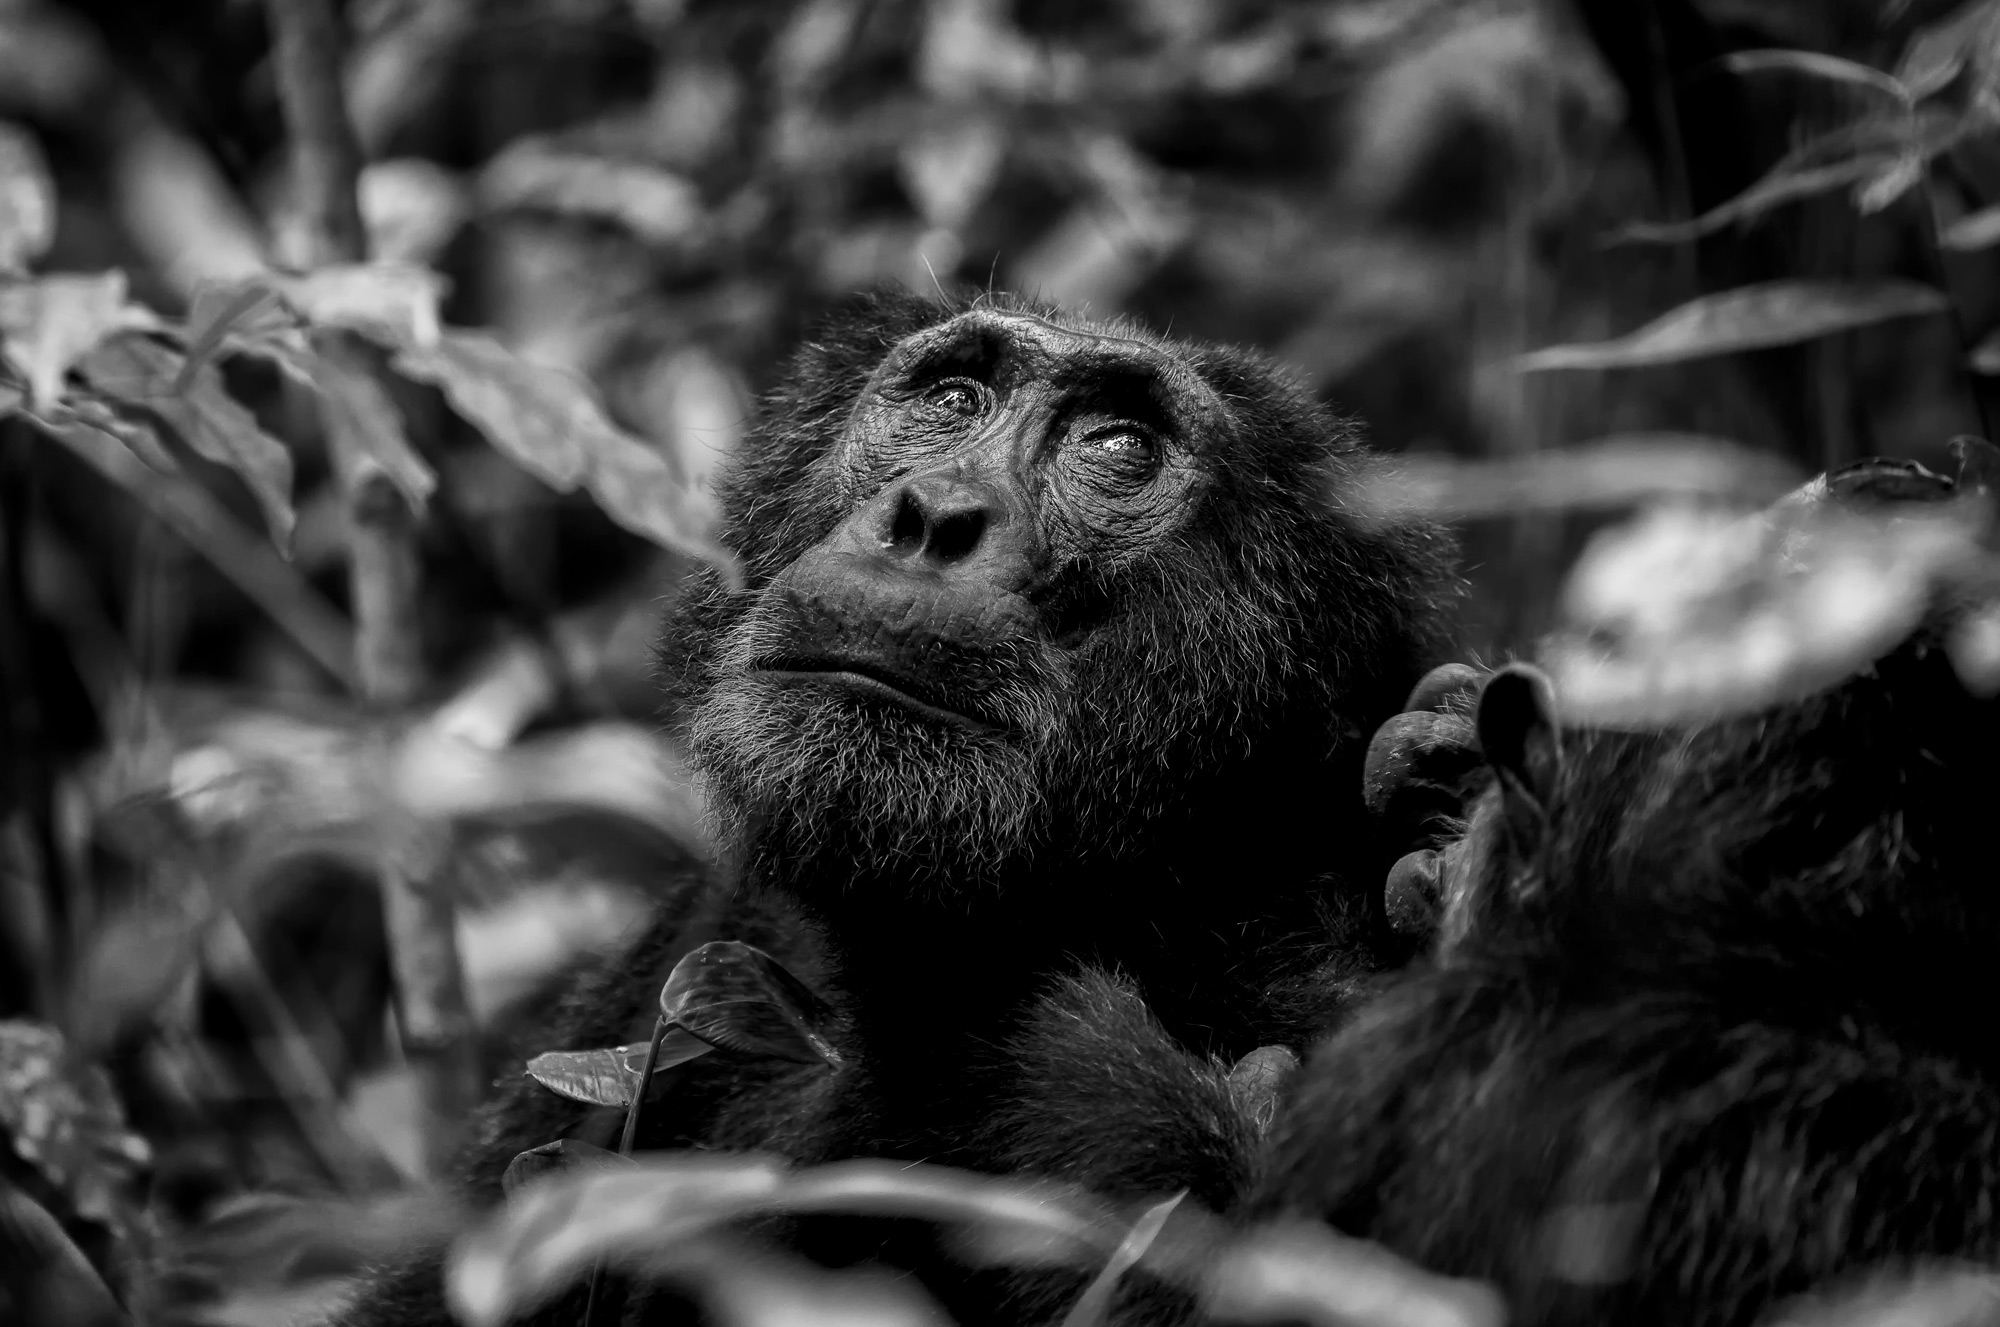 """""""The wise one"""" in Kibale National Park, Uganda © Prelena Soma Owen (Photographer of the Year 2018 Finalist)"""